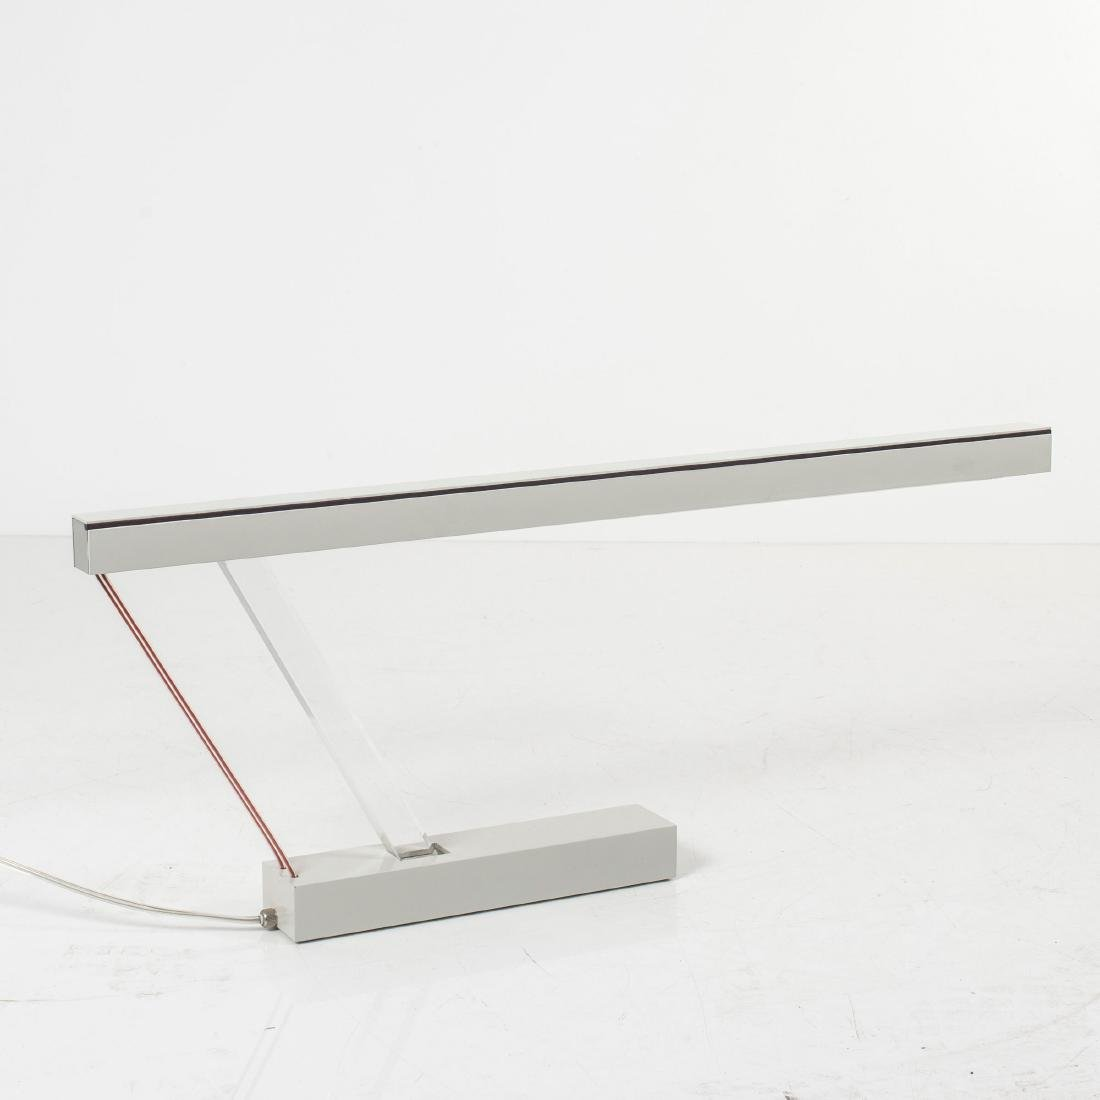 Max Rond (attributed) Table light, c. 1965 - 5